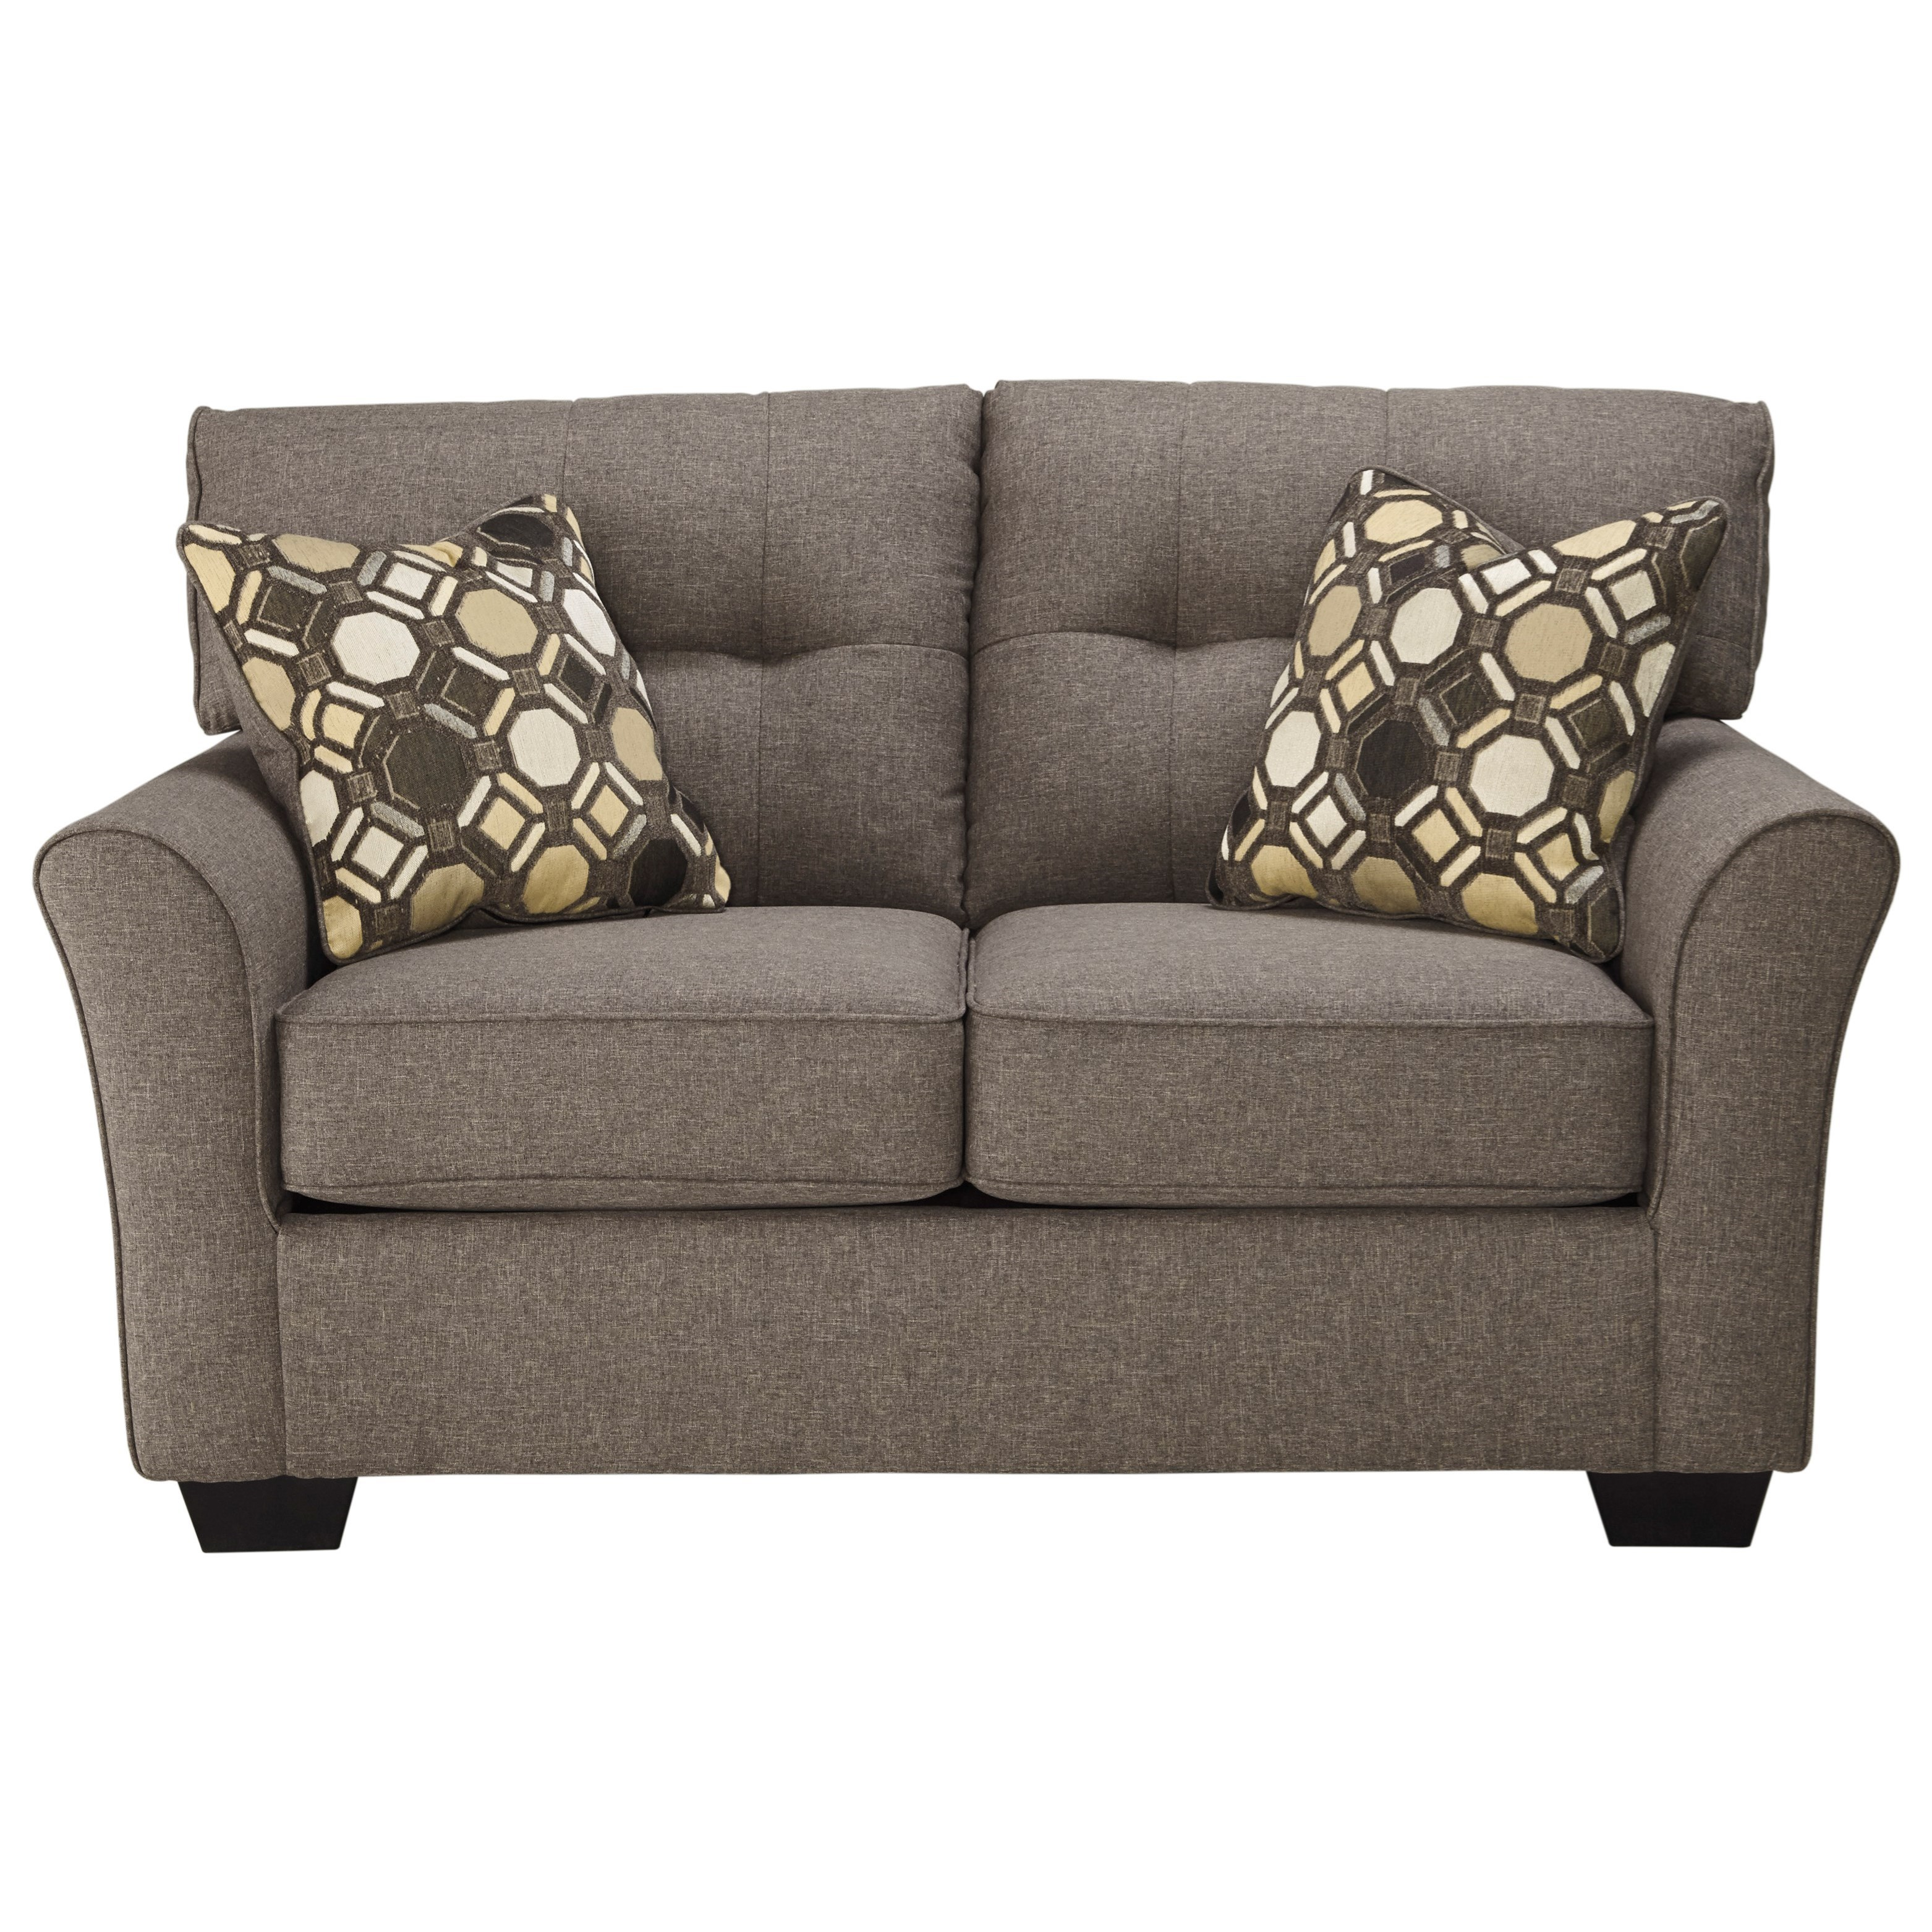 Tibbee Loveseat by Signature Design by Ashley at Esprit Decor Home Furnishings